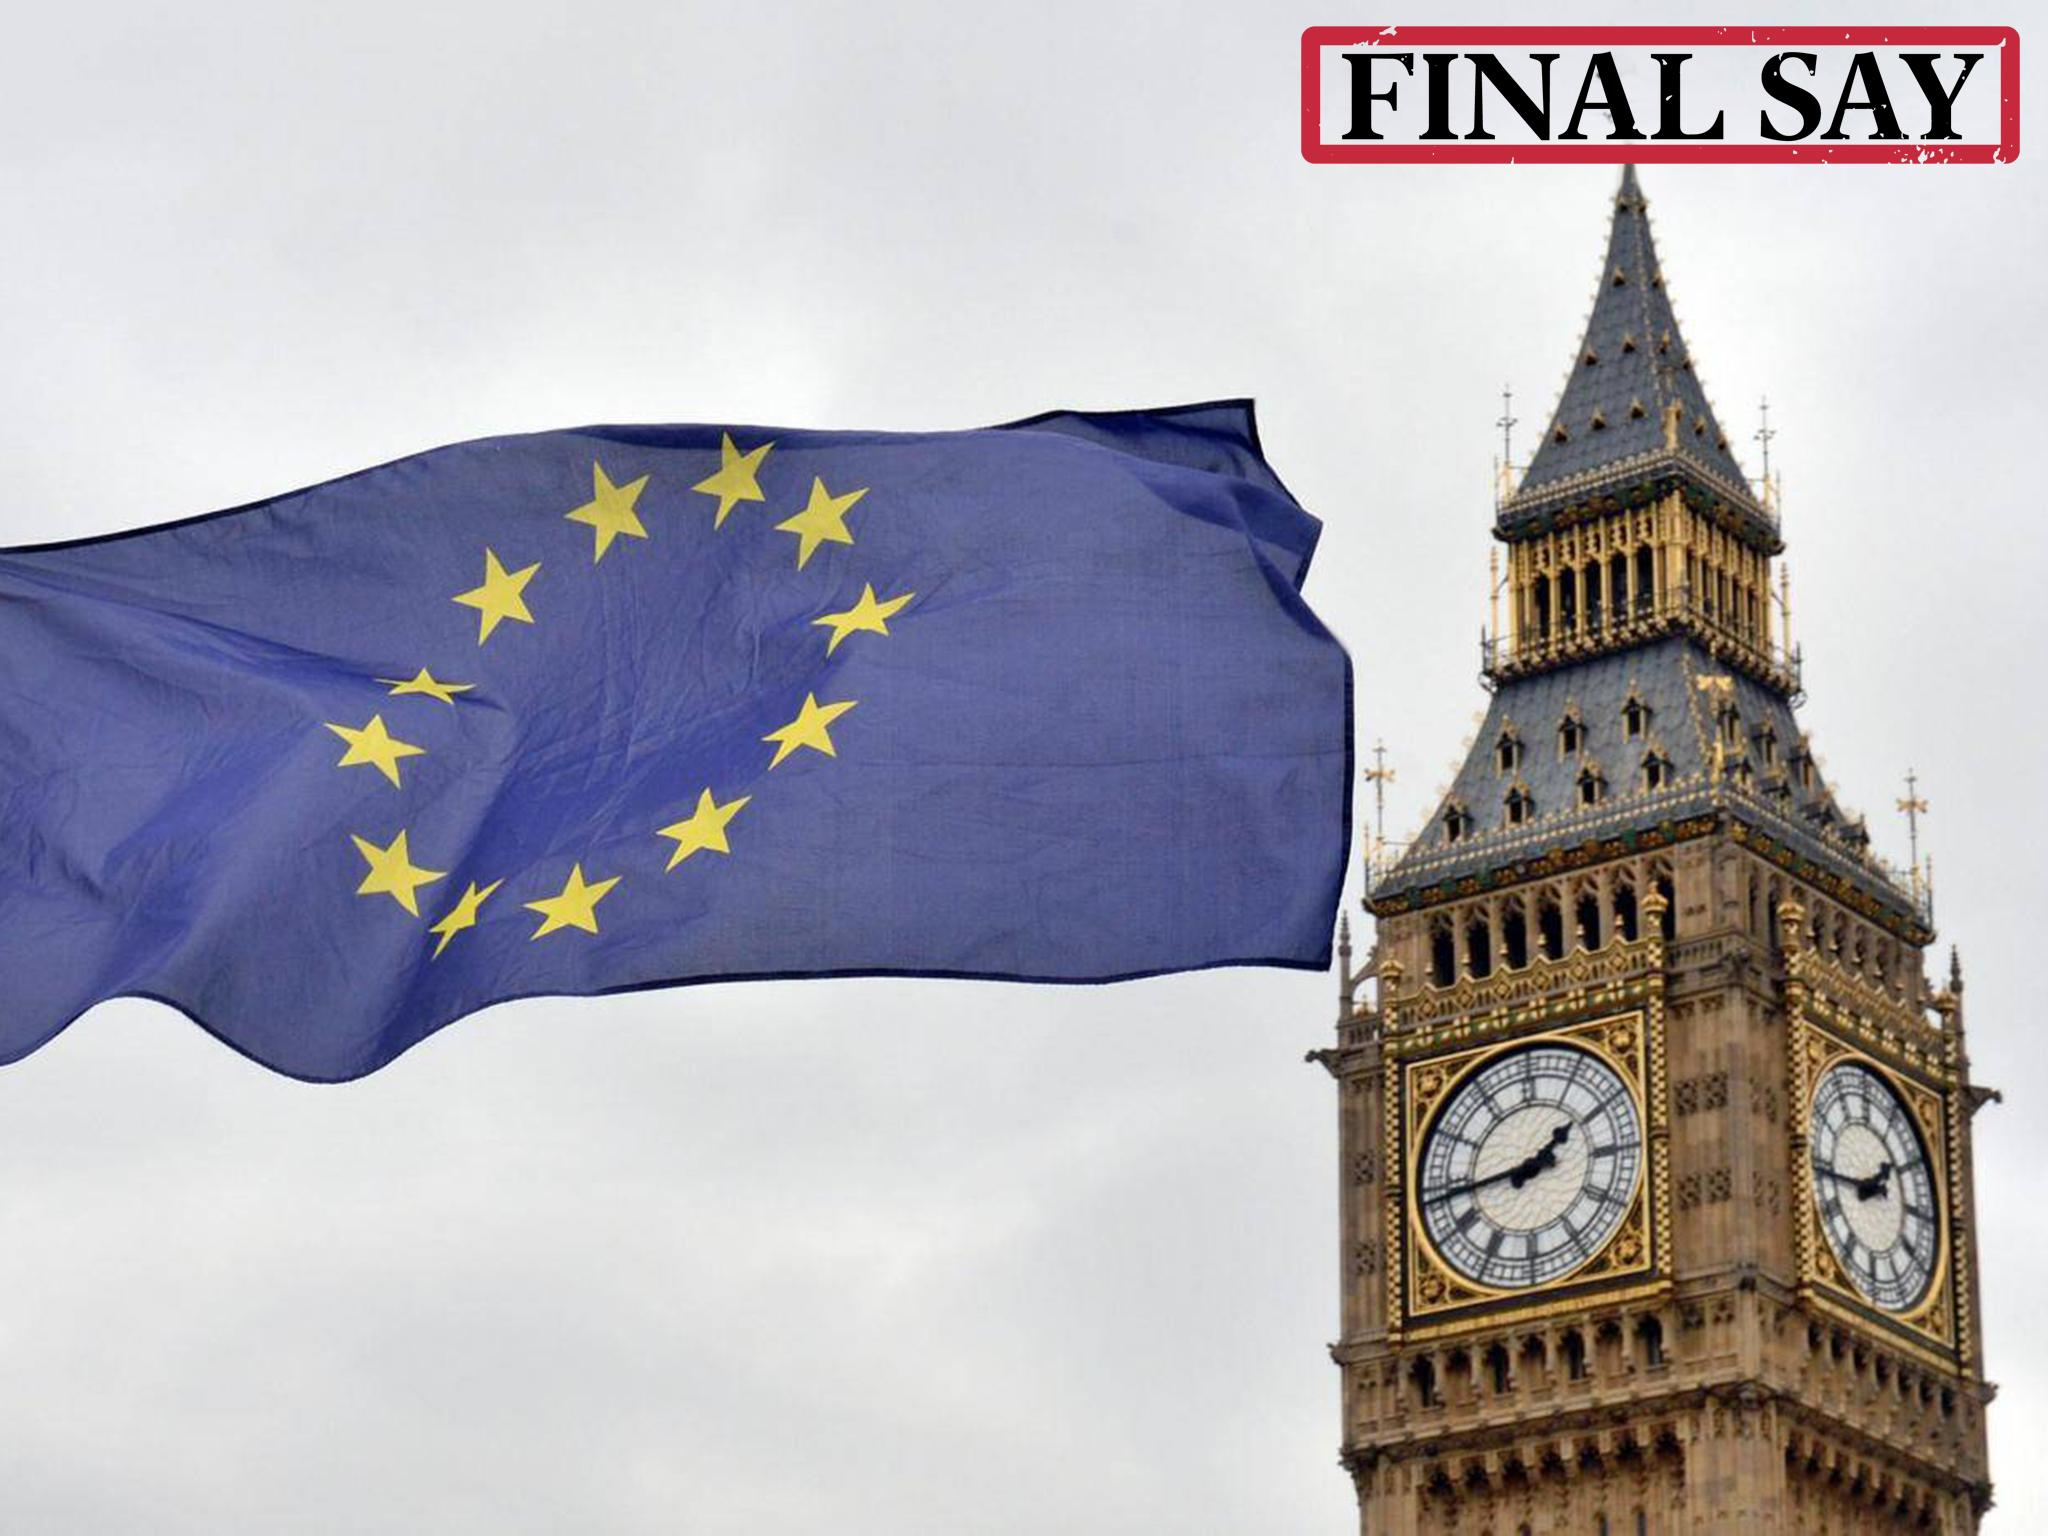 The referendum gave sovereignty to the British people, so now they deserve a final say on the Brexit deal